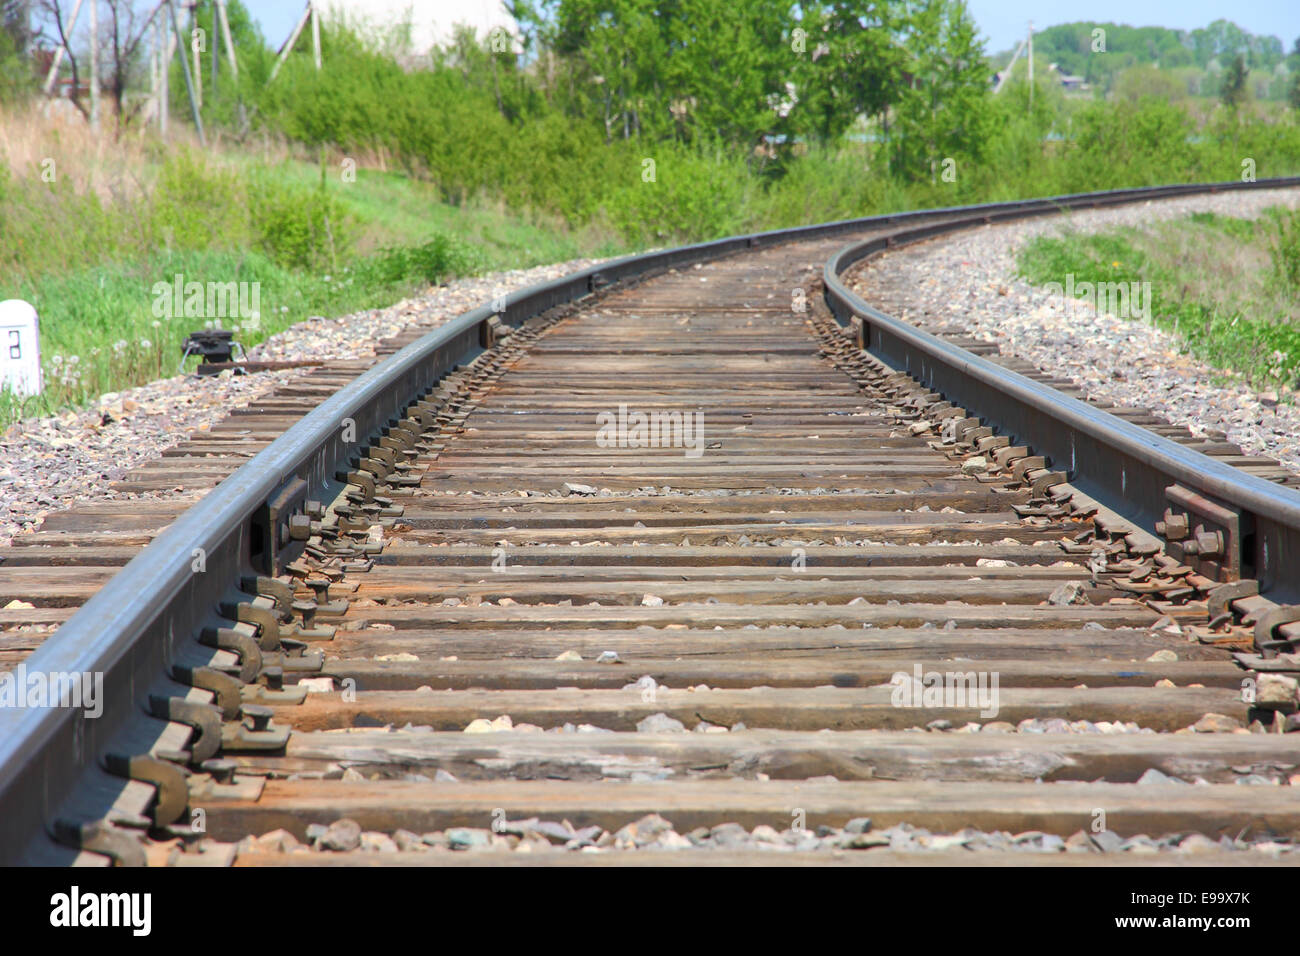 Rotate the rail leaving the distance - Stock Image